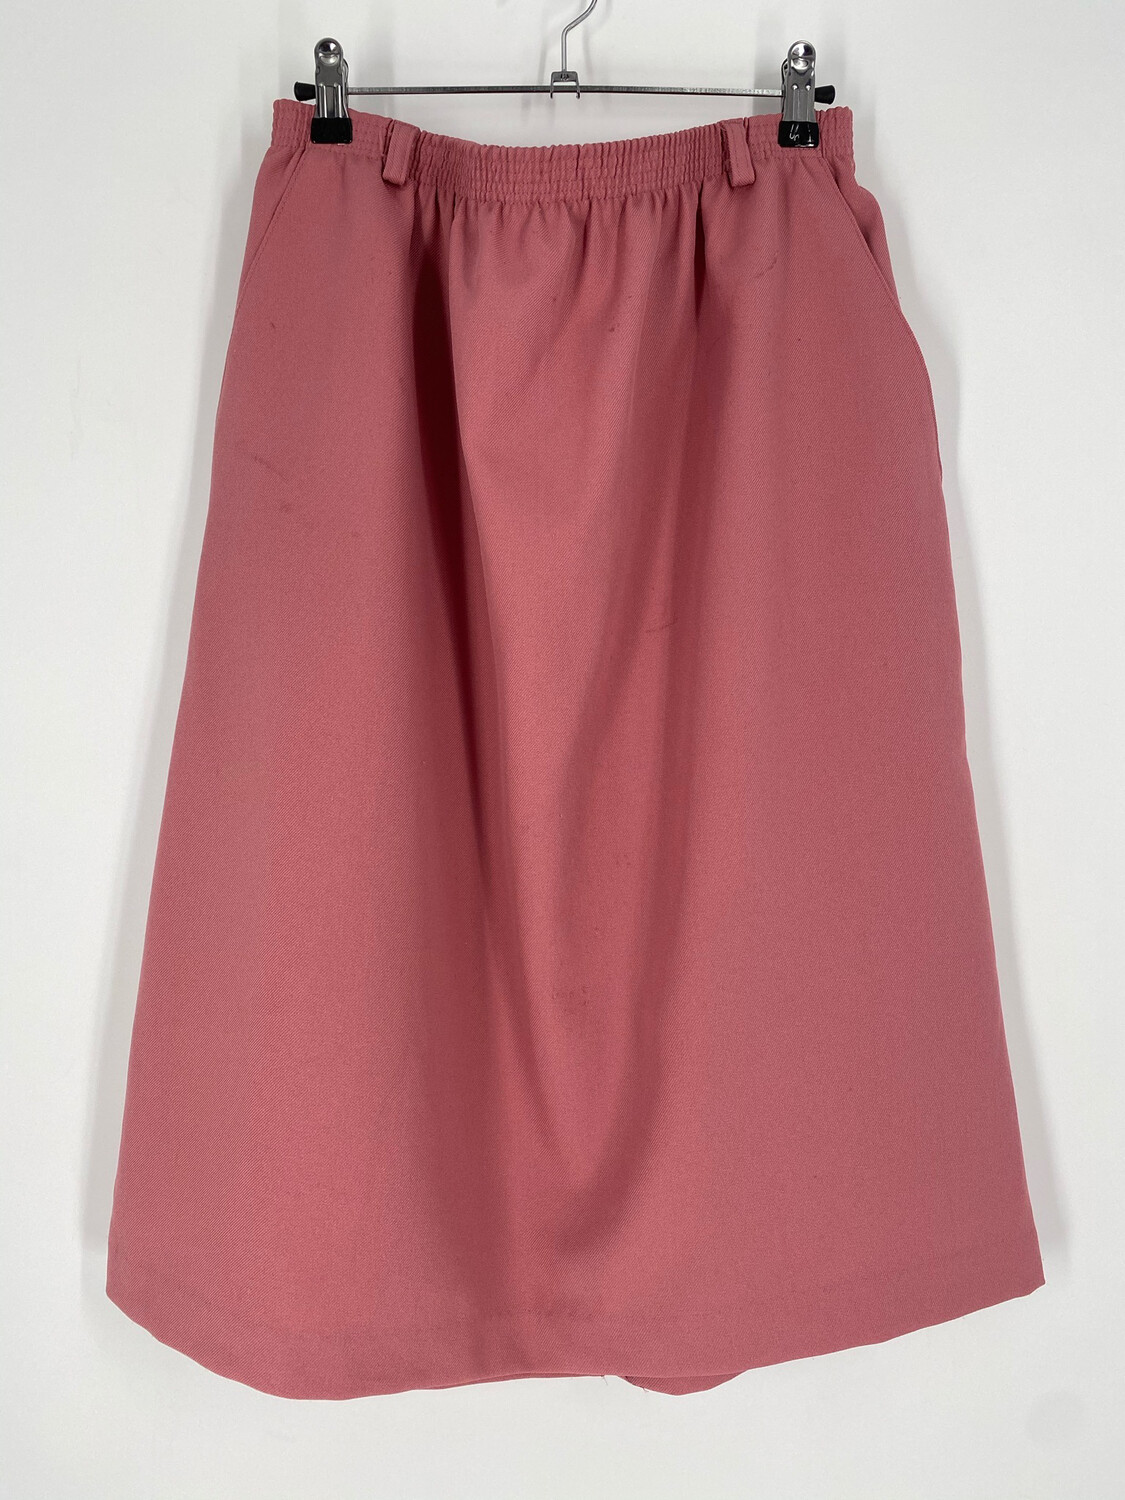 Classic Collection Vintage Pink Elastic Waist Skirt Size 18